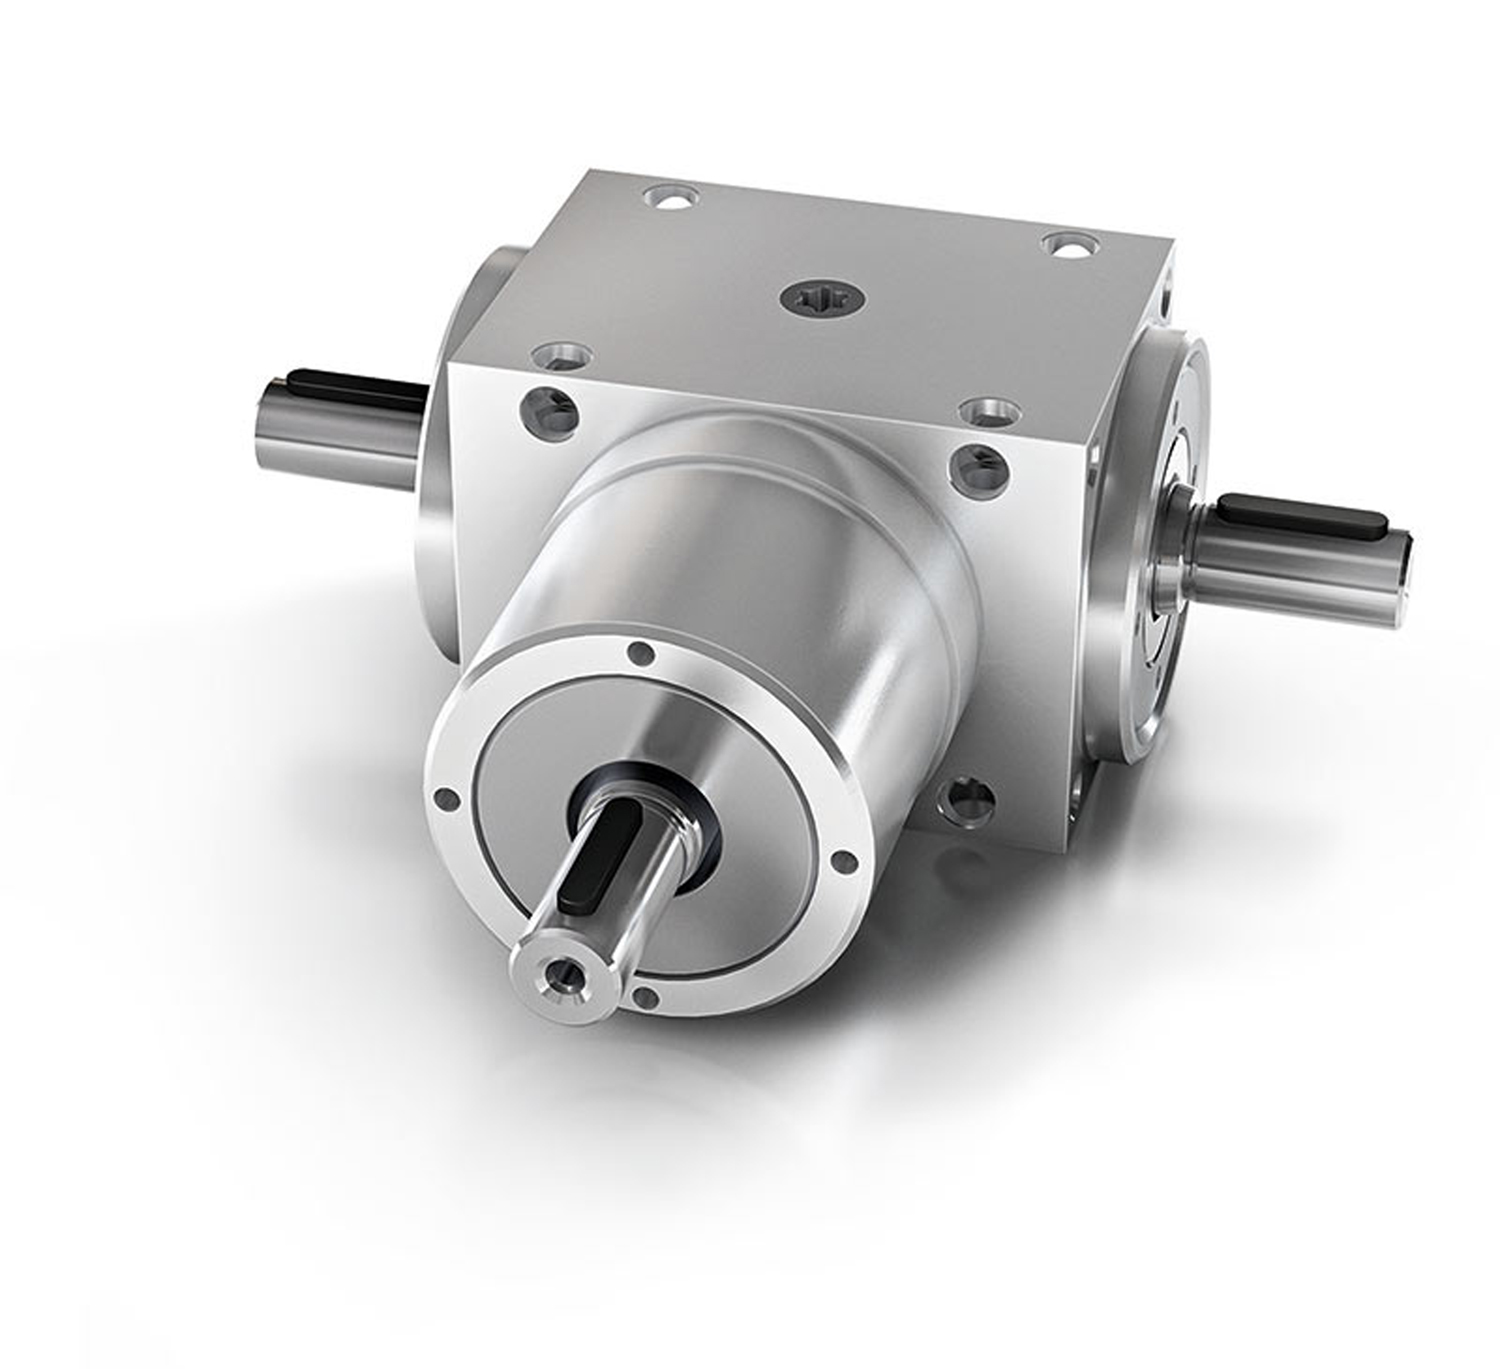 Miniature Gearboxes reset performance expectations